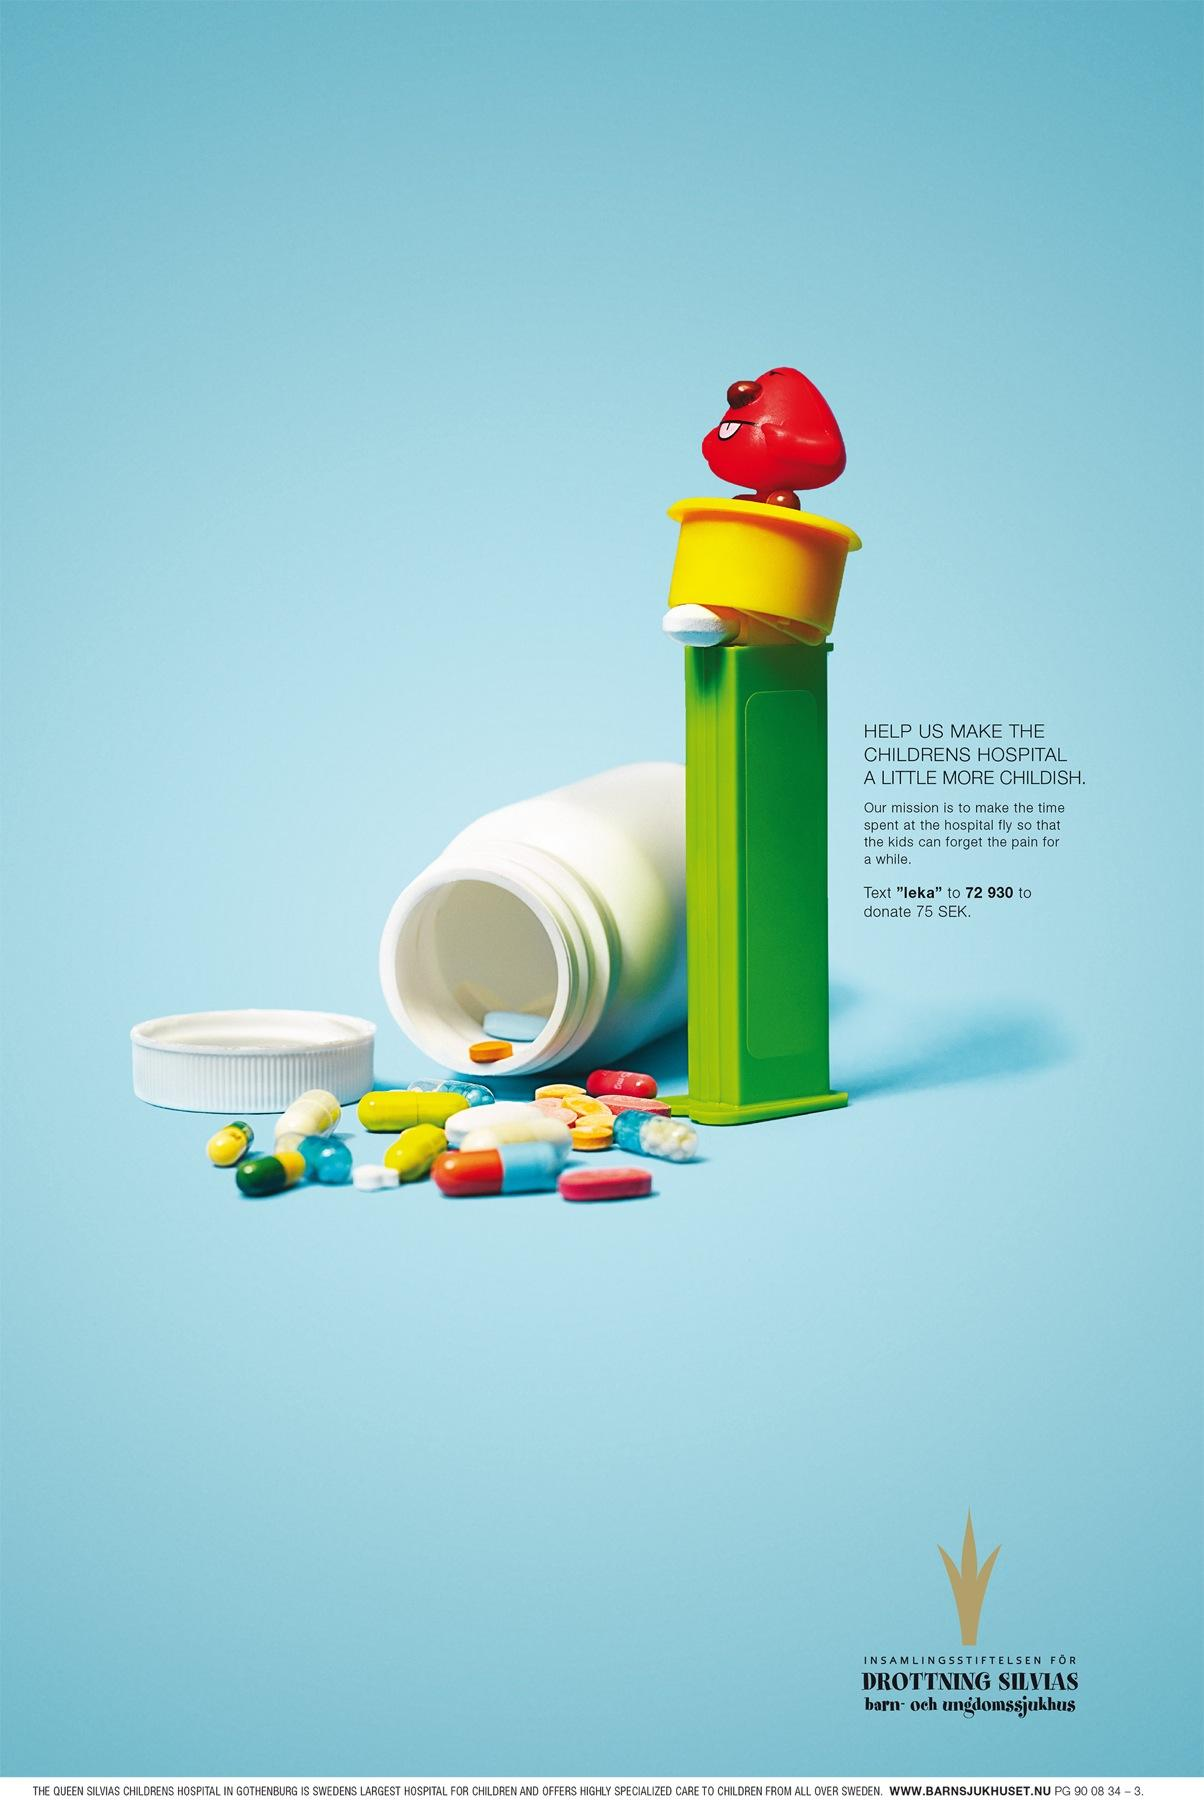 The Foundation for Queen Silvia Children's Hospital Print Ad -  More childish, 2